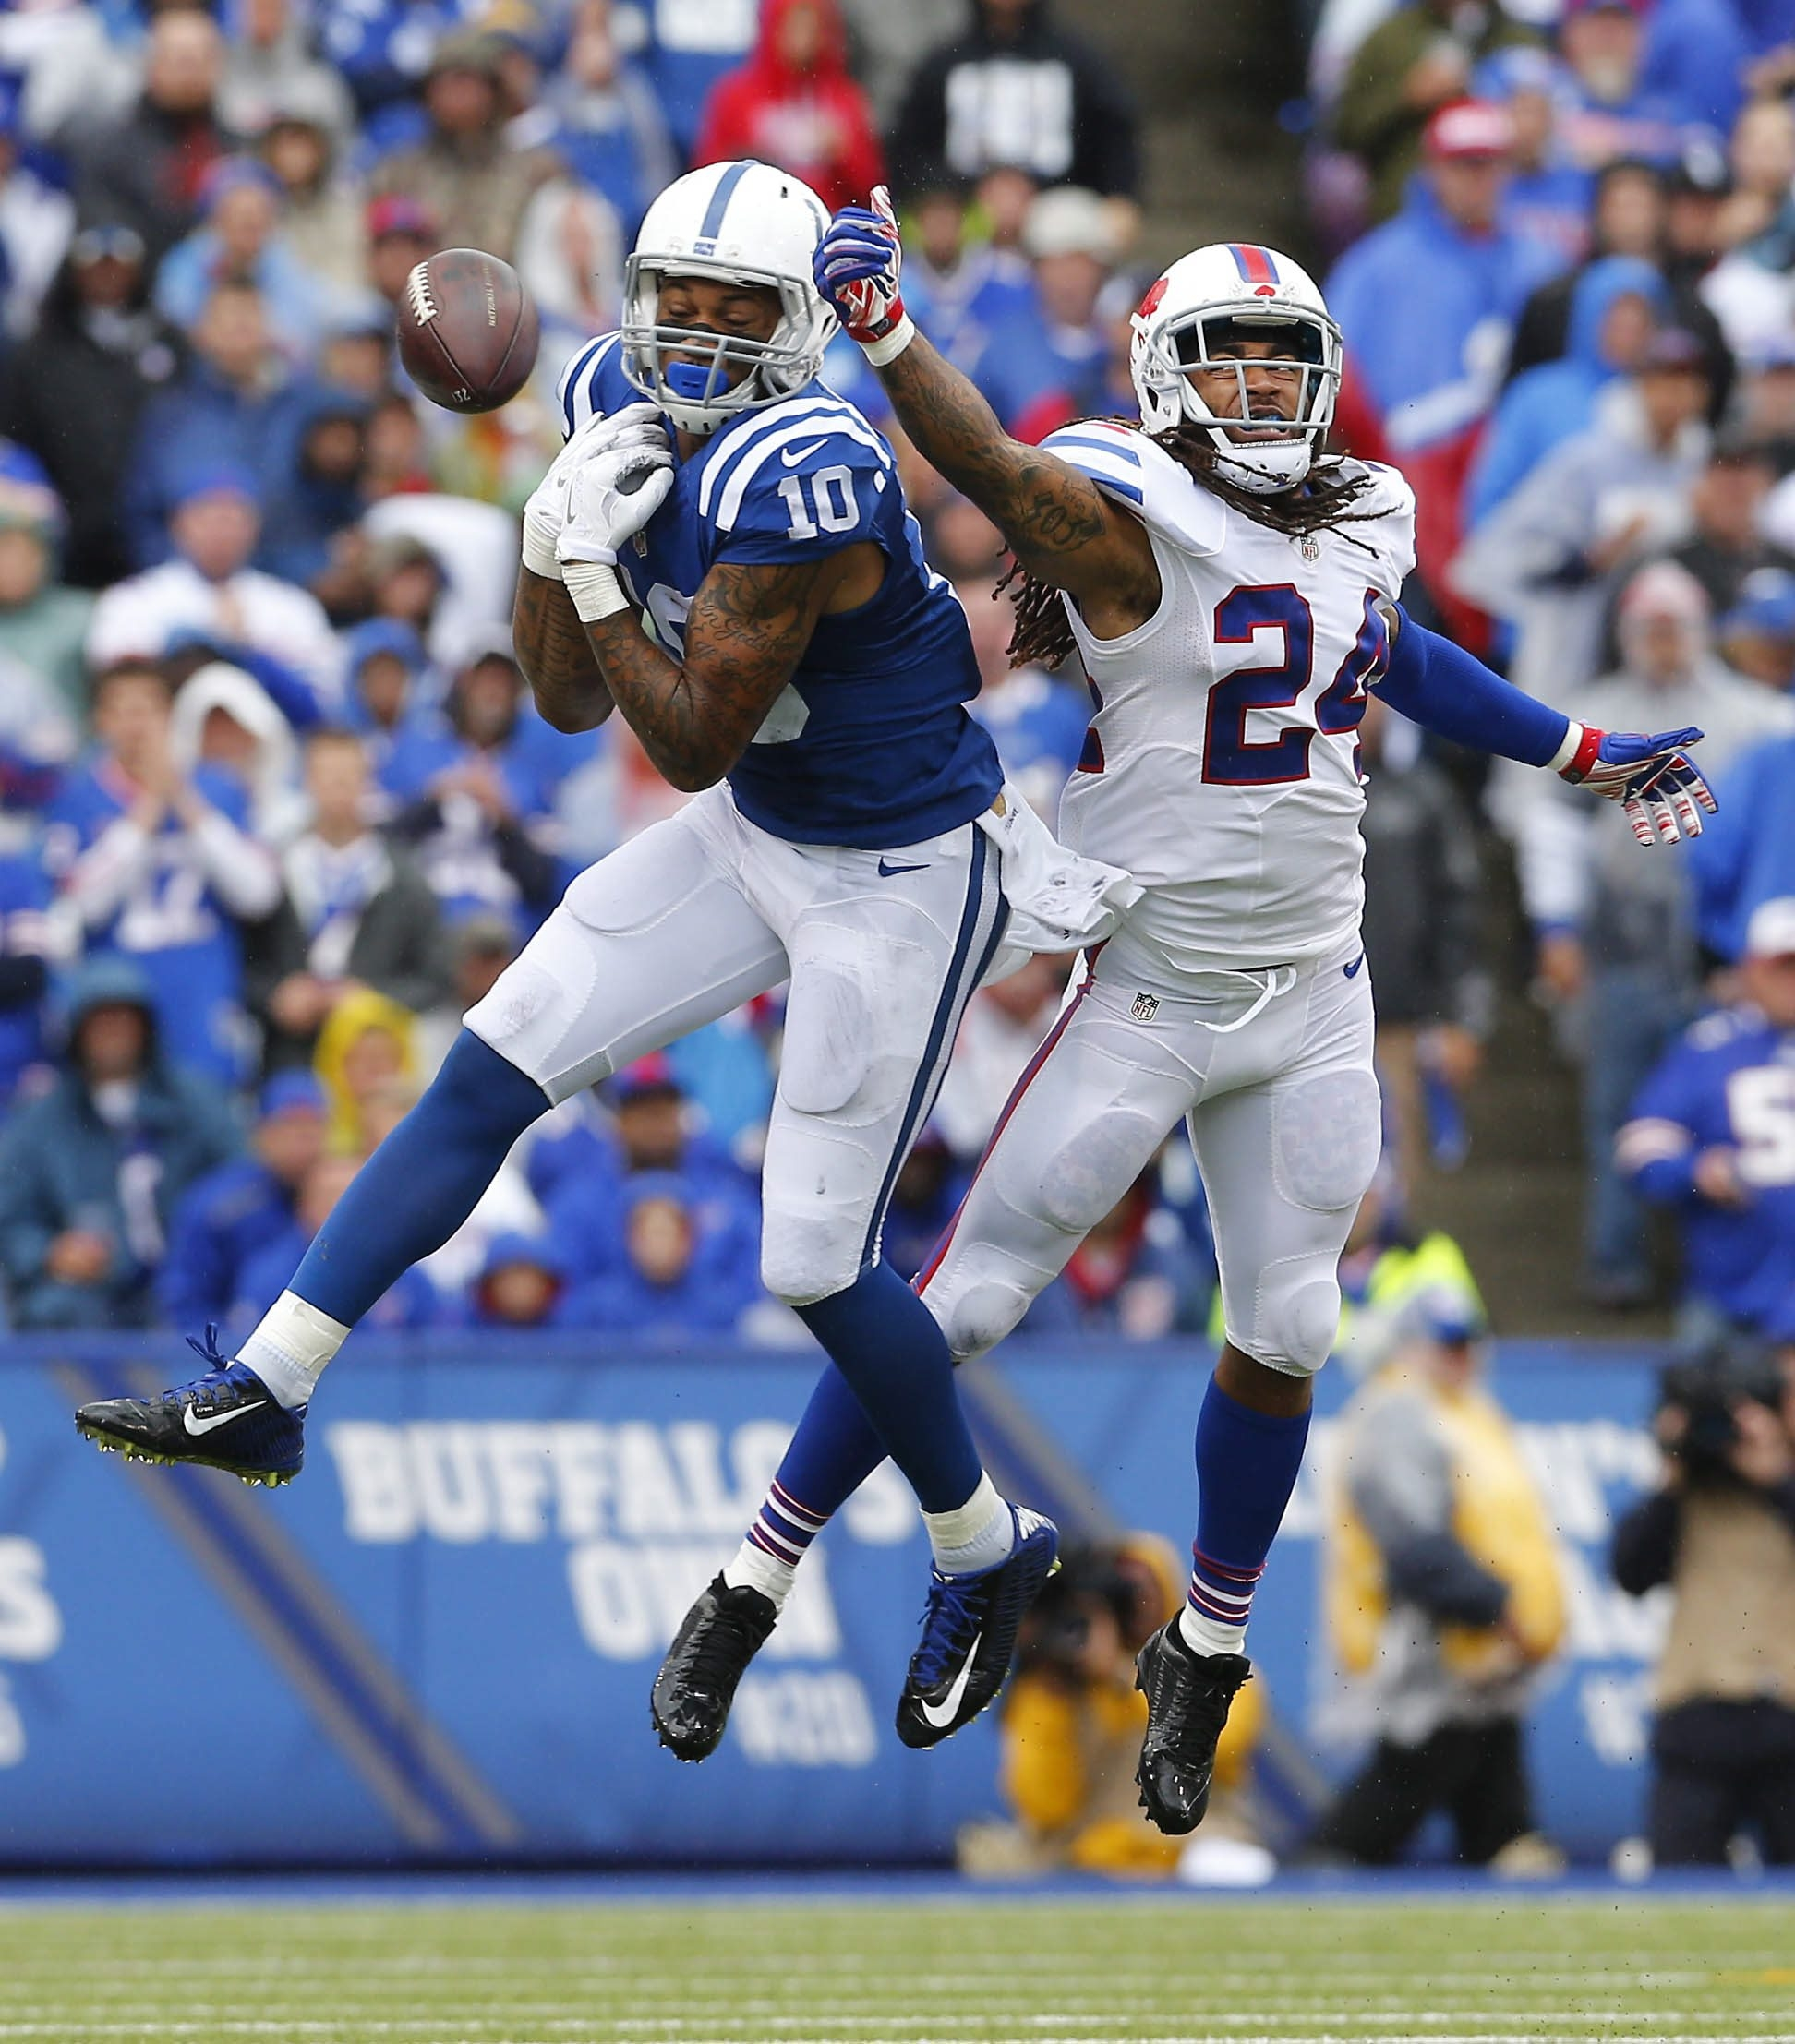 Cornerback Stephon Gilmore has proven himself to be one of the key components on defense for the Bills when he's on the field.